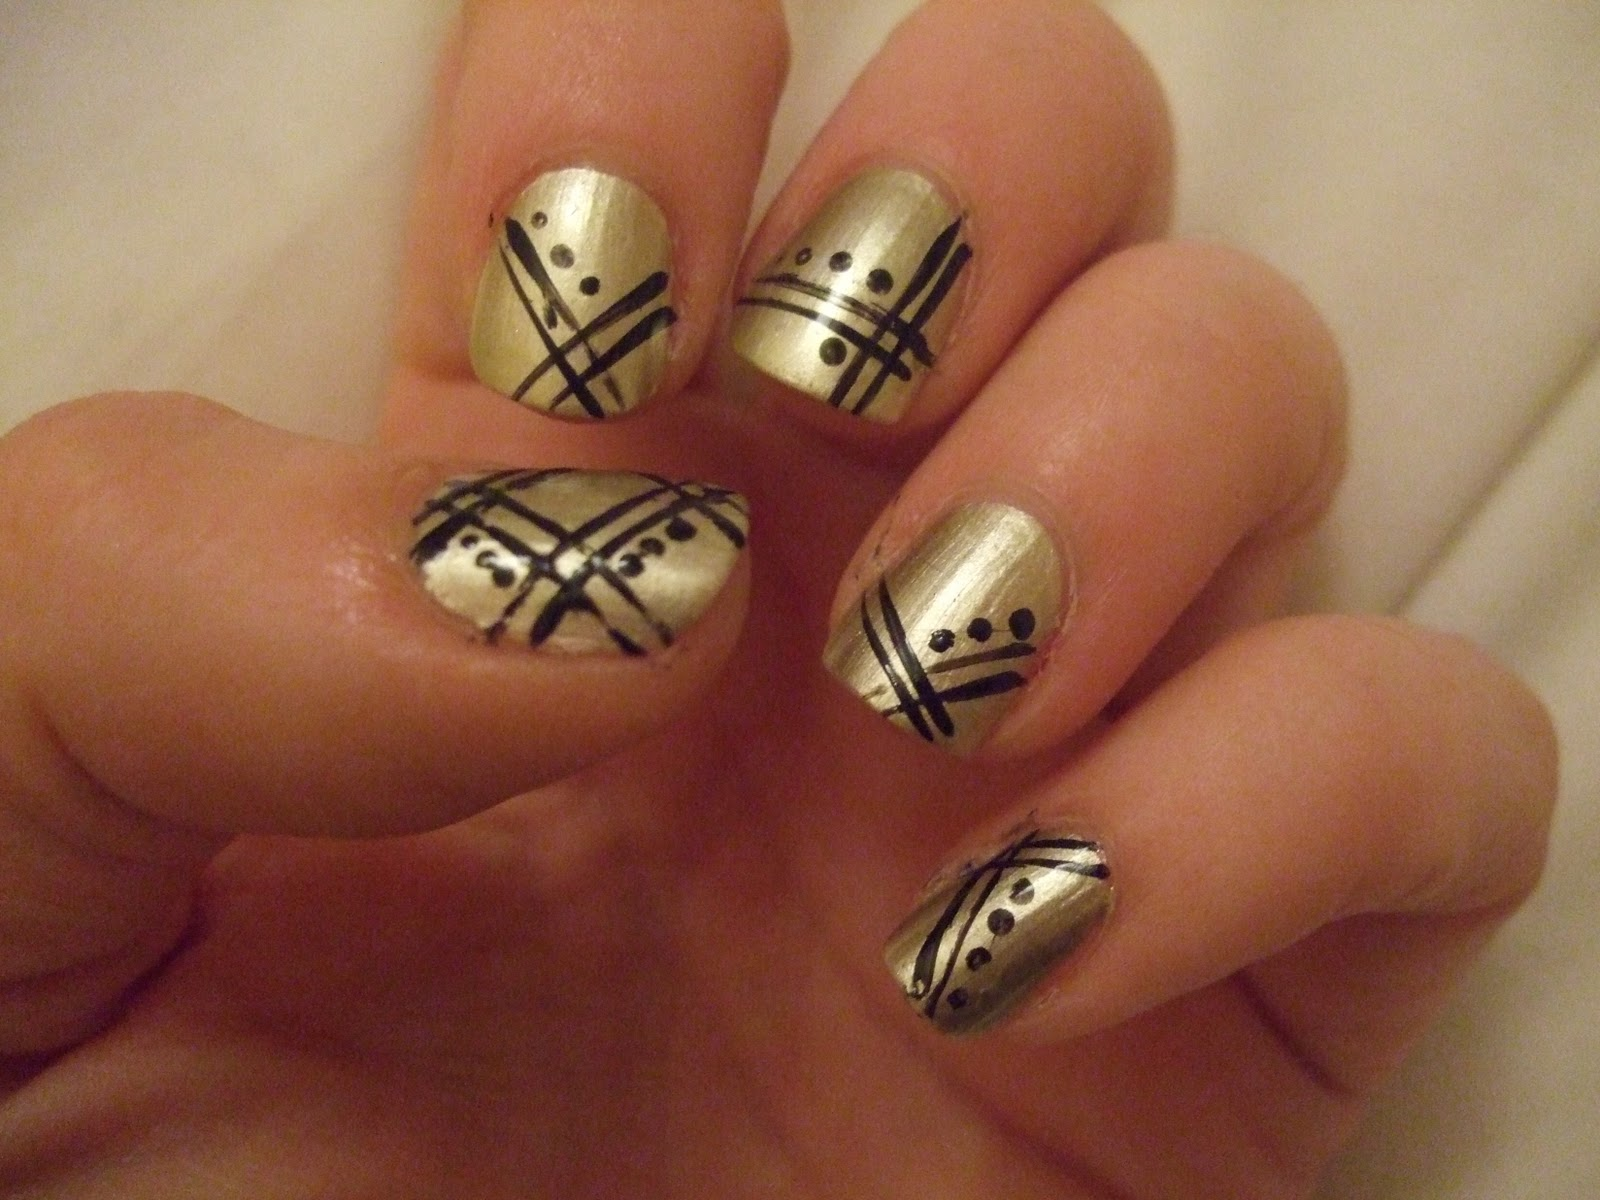 ... nail design is another quick and easy one! Its a gold Art Deco design